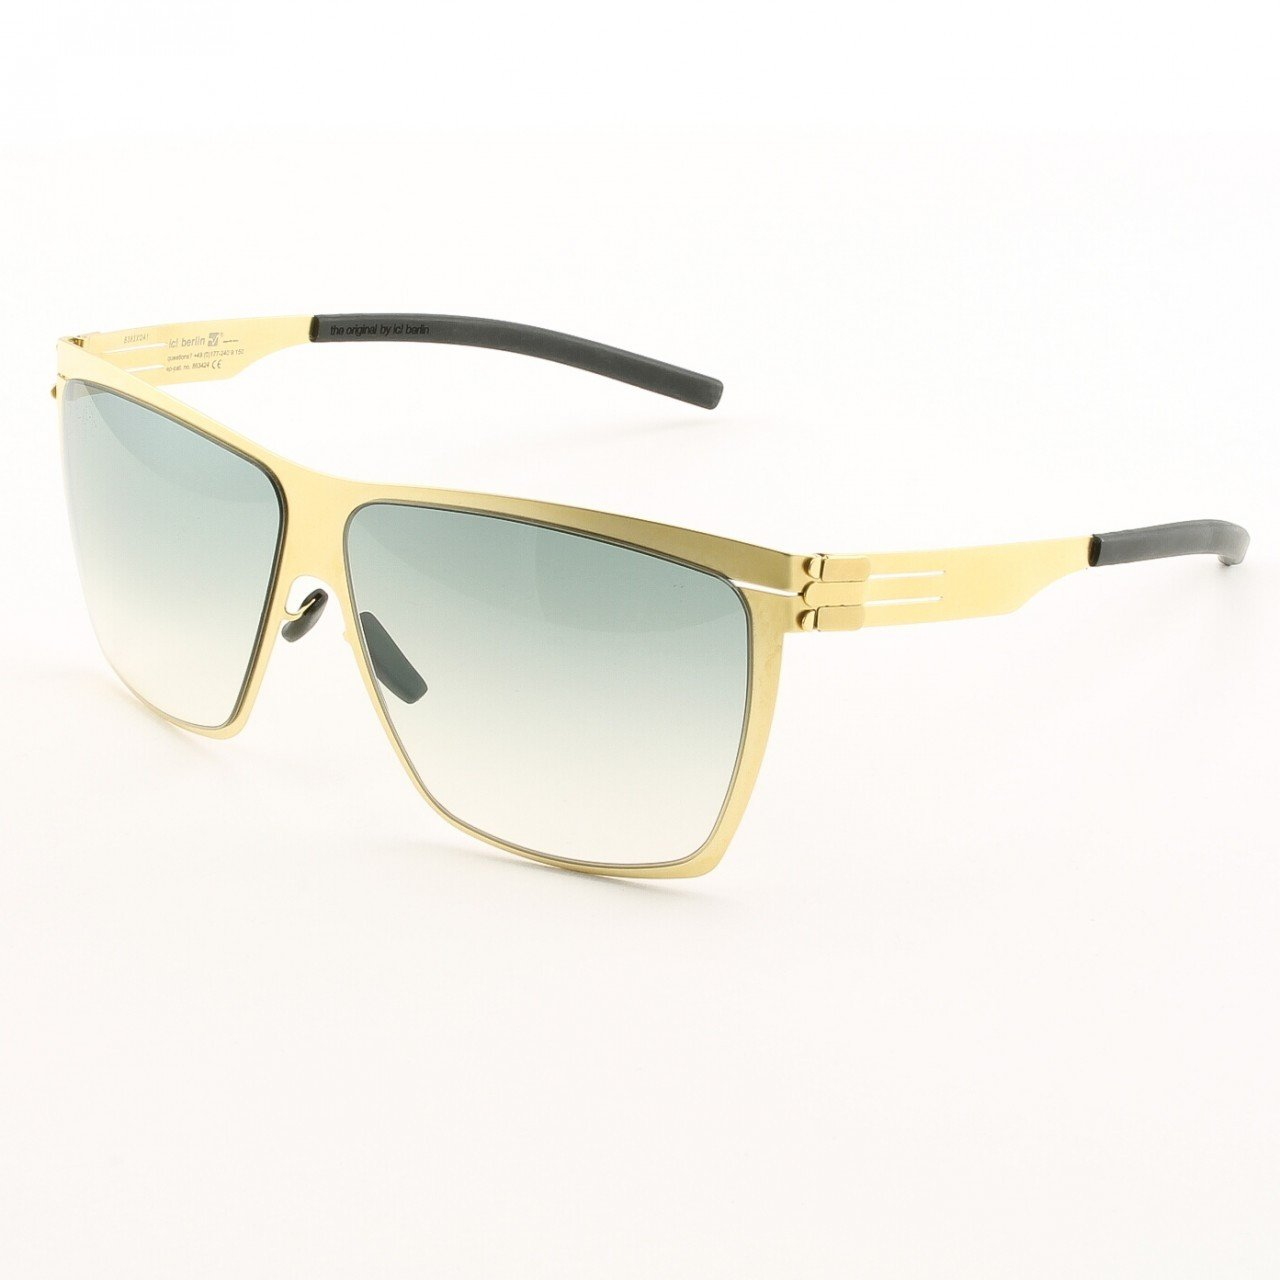 ic! Berlin Dark Energy Sunglasses Col. Gold with Black Gradient Lenses